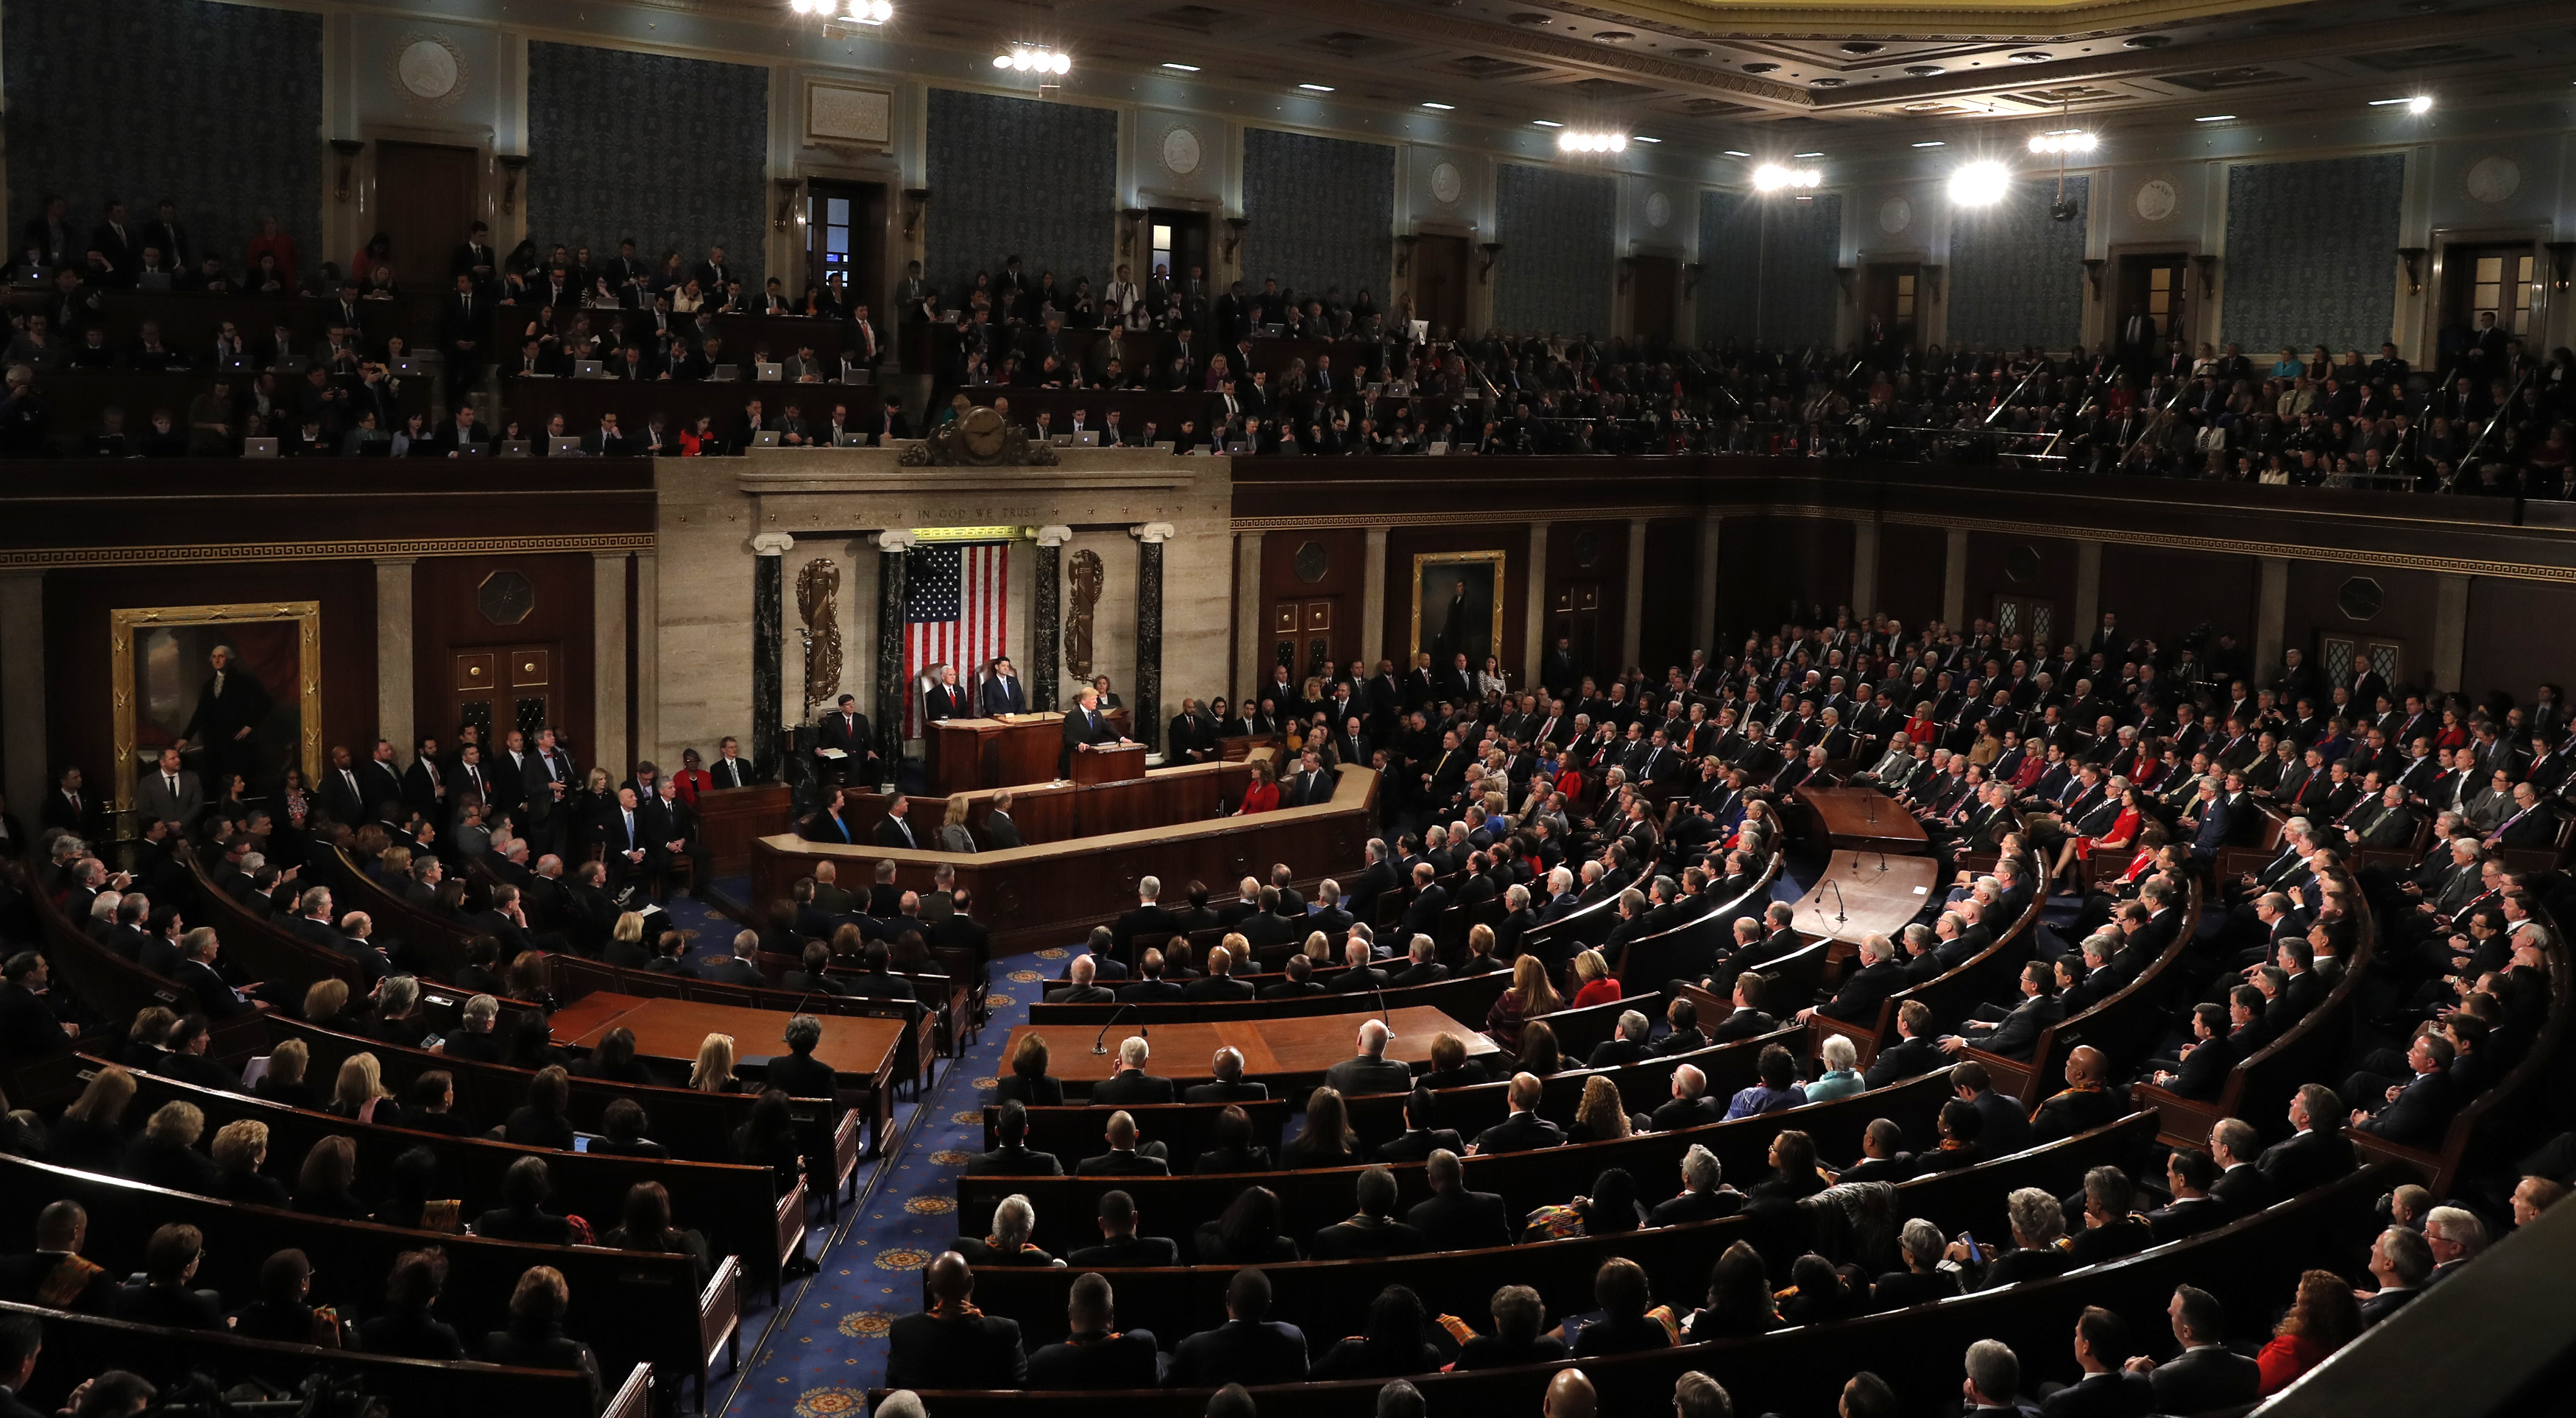 U.S. President Donald Trump delivers his State of the Union address to a joint session of the U.S. Congress on Capitol Hill in Washington, Jan. 30, 2018.